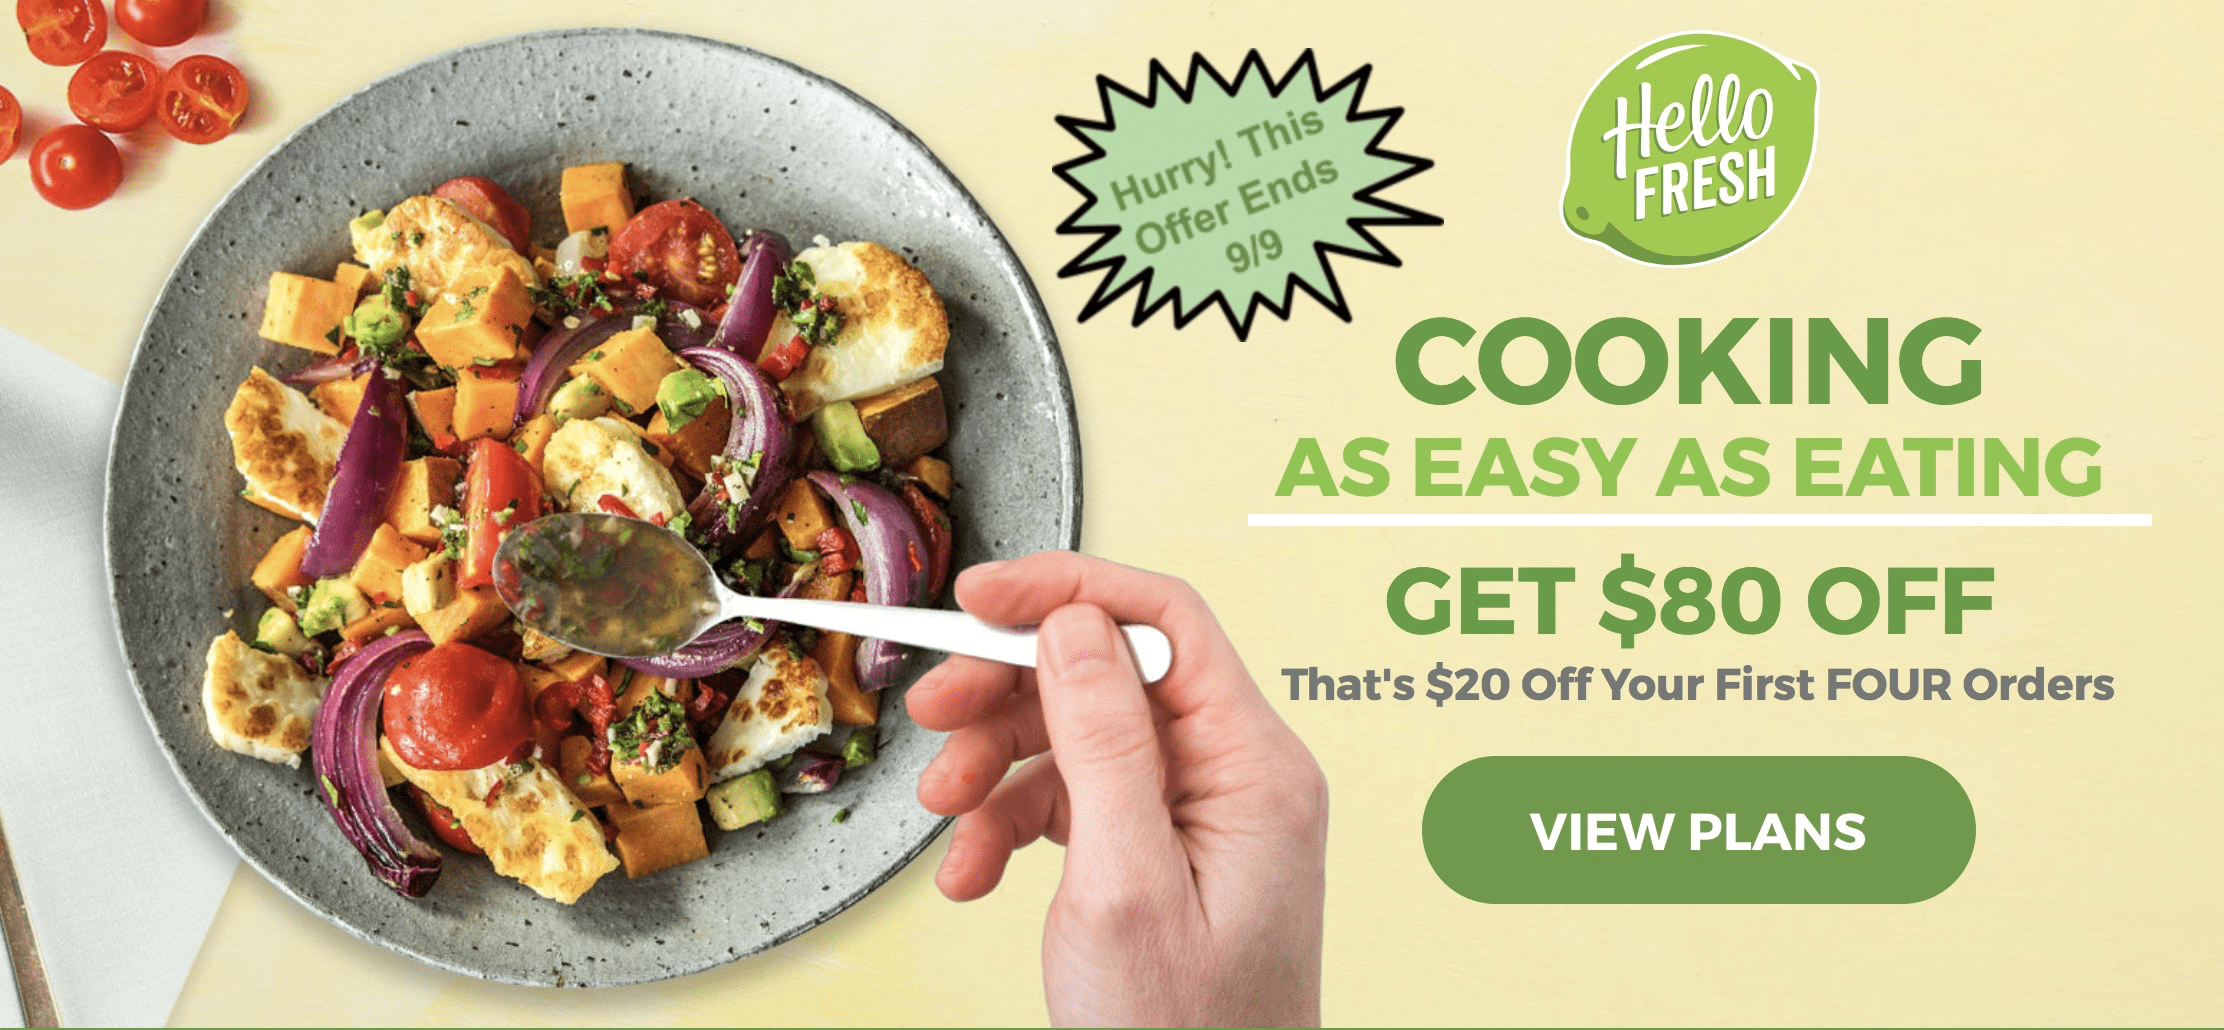 Hello Fresh Labor Day Coupon: $80 Off Your First Four Boxes!